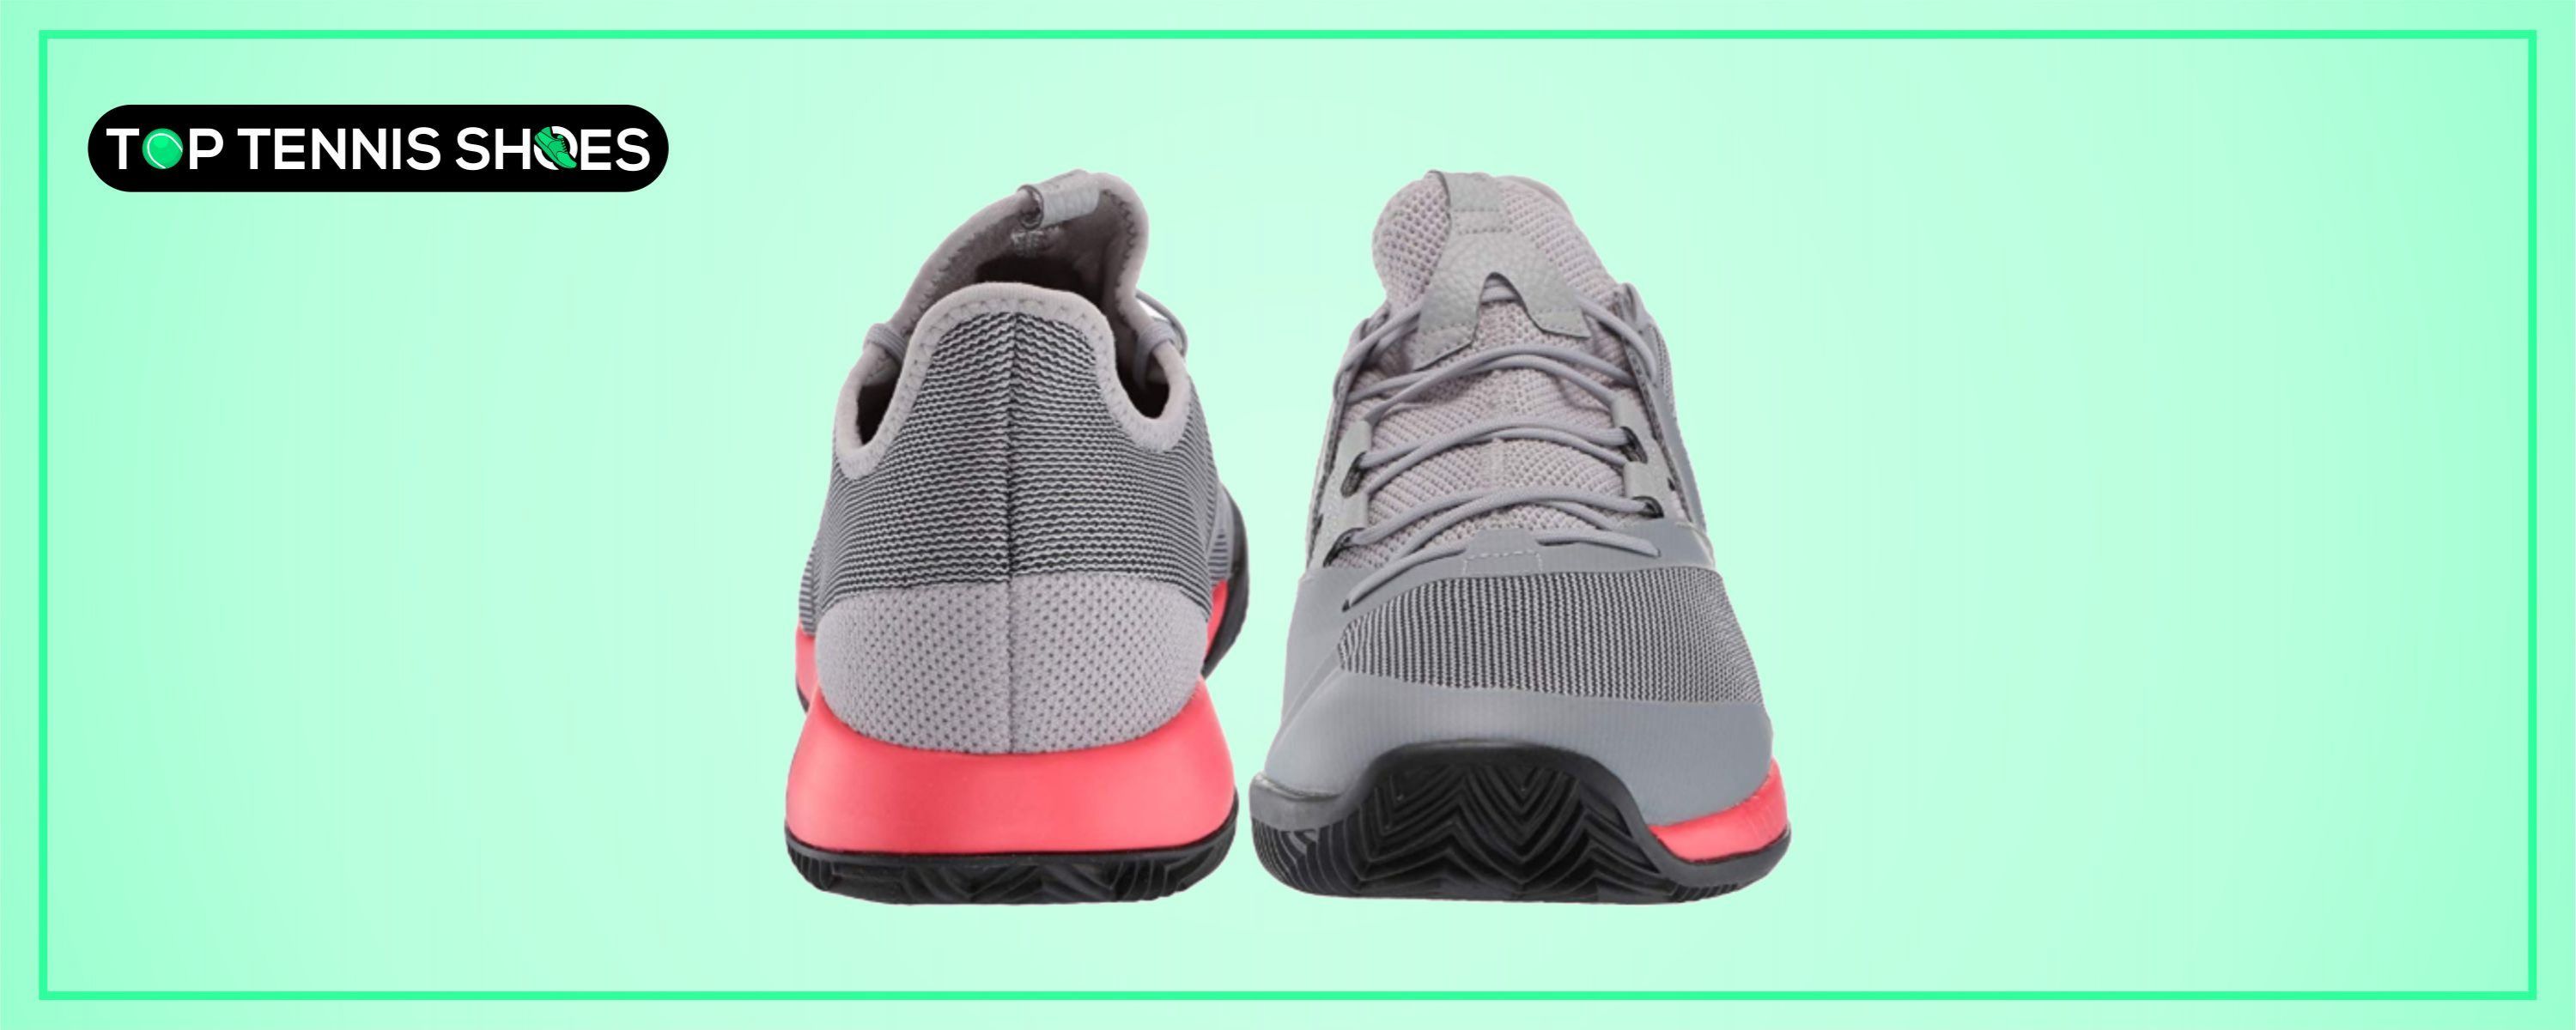 Top Tennis Sneakers 2019